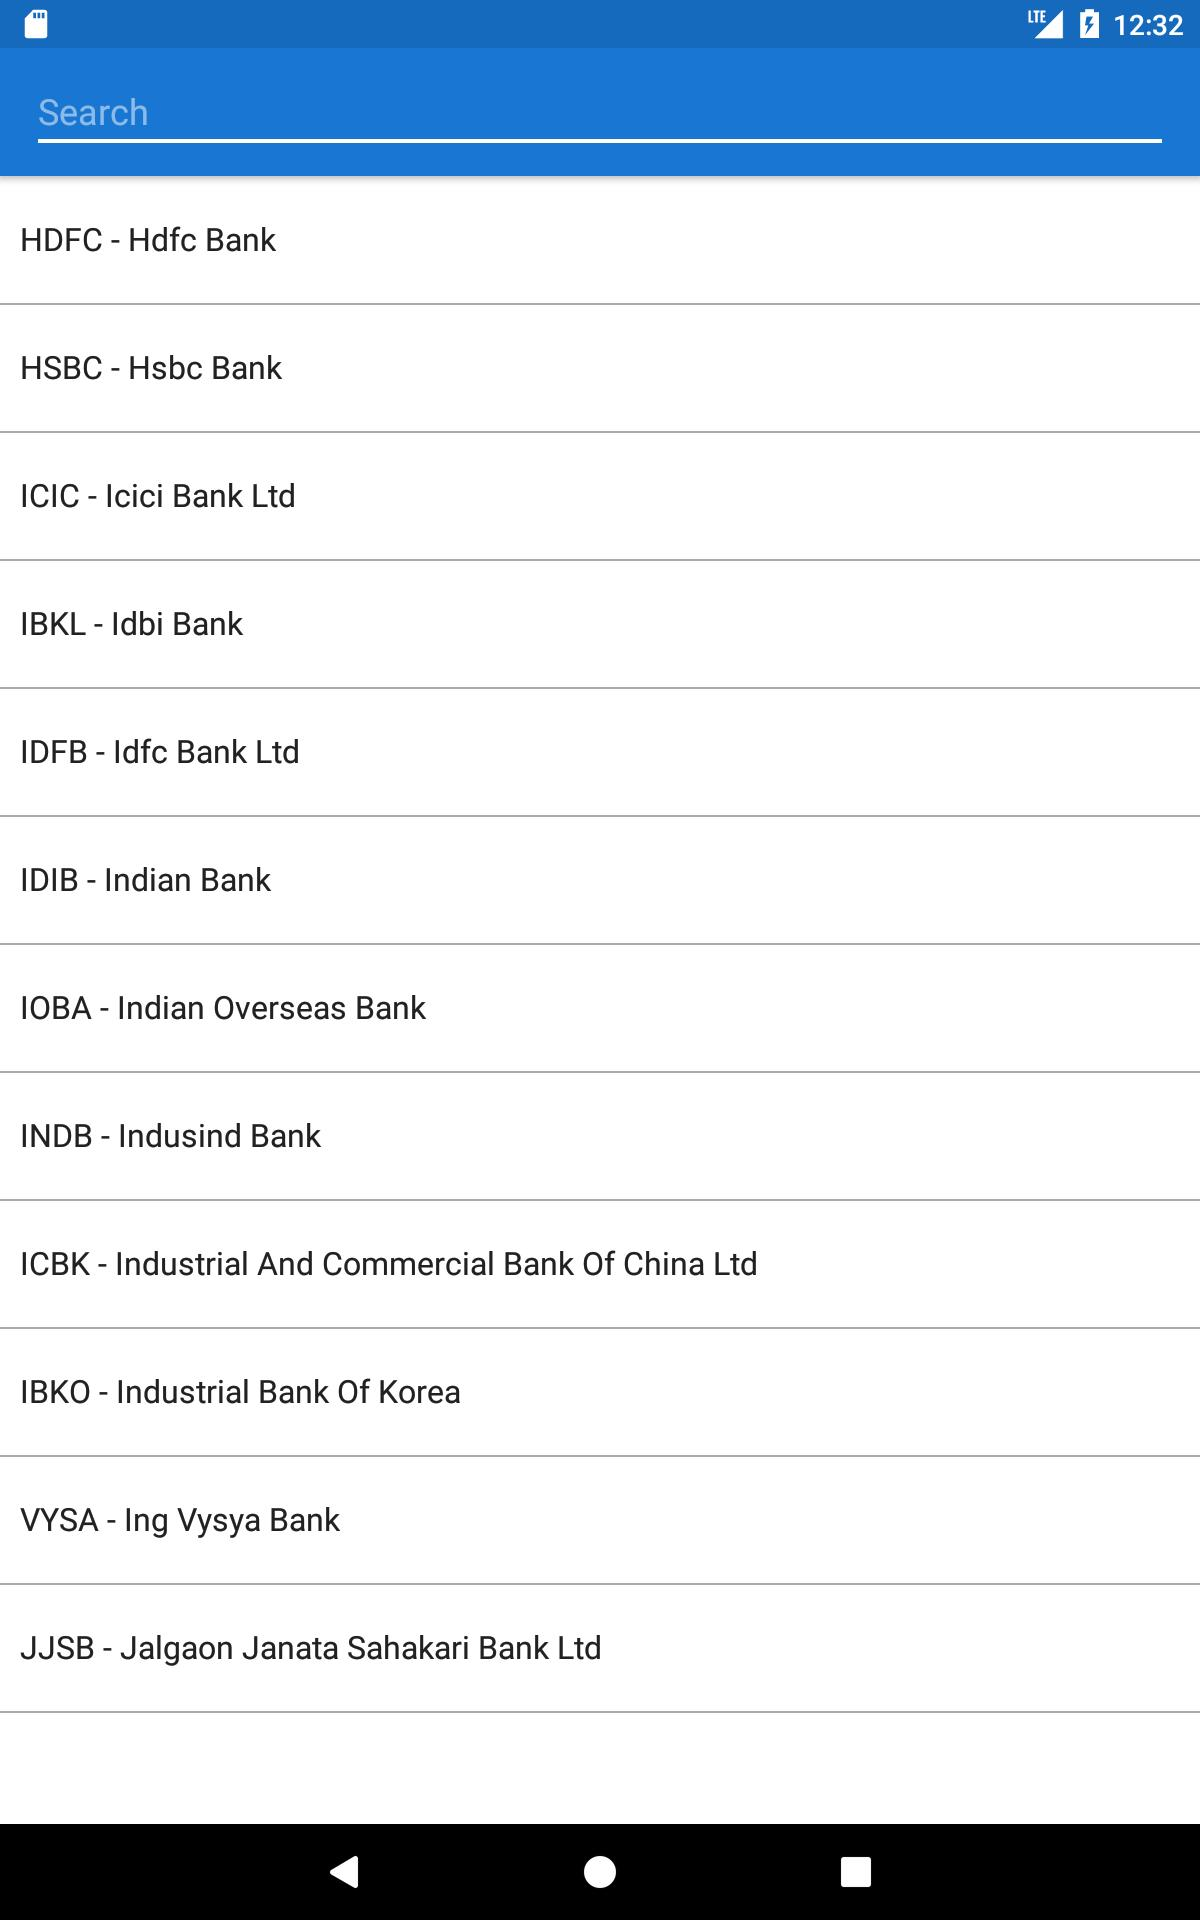 India Bank IFSC Code Finder for Android - APK Download